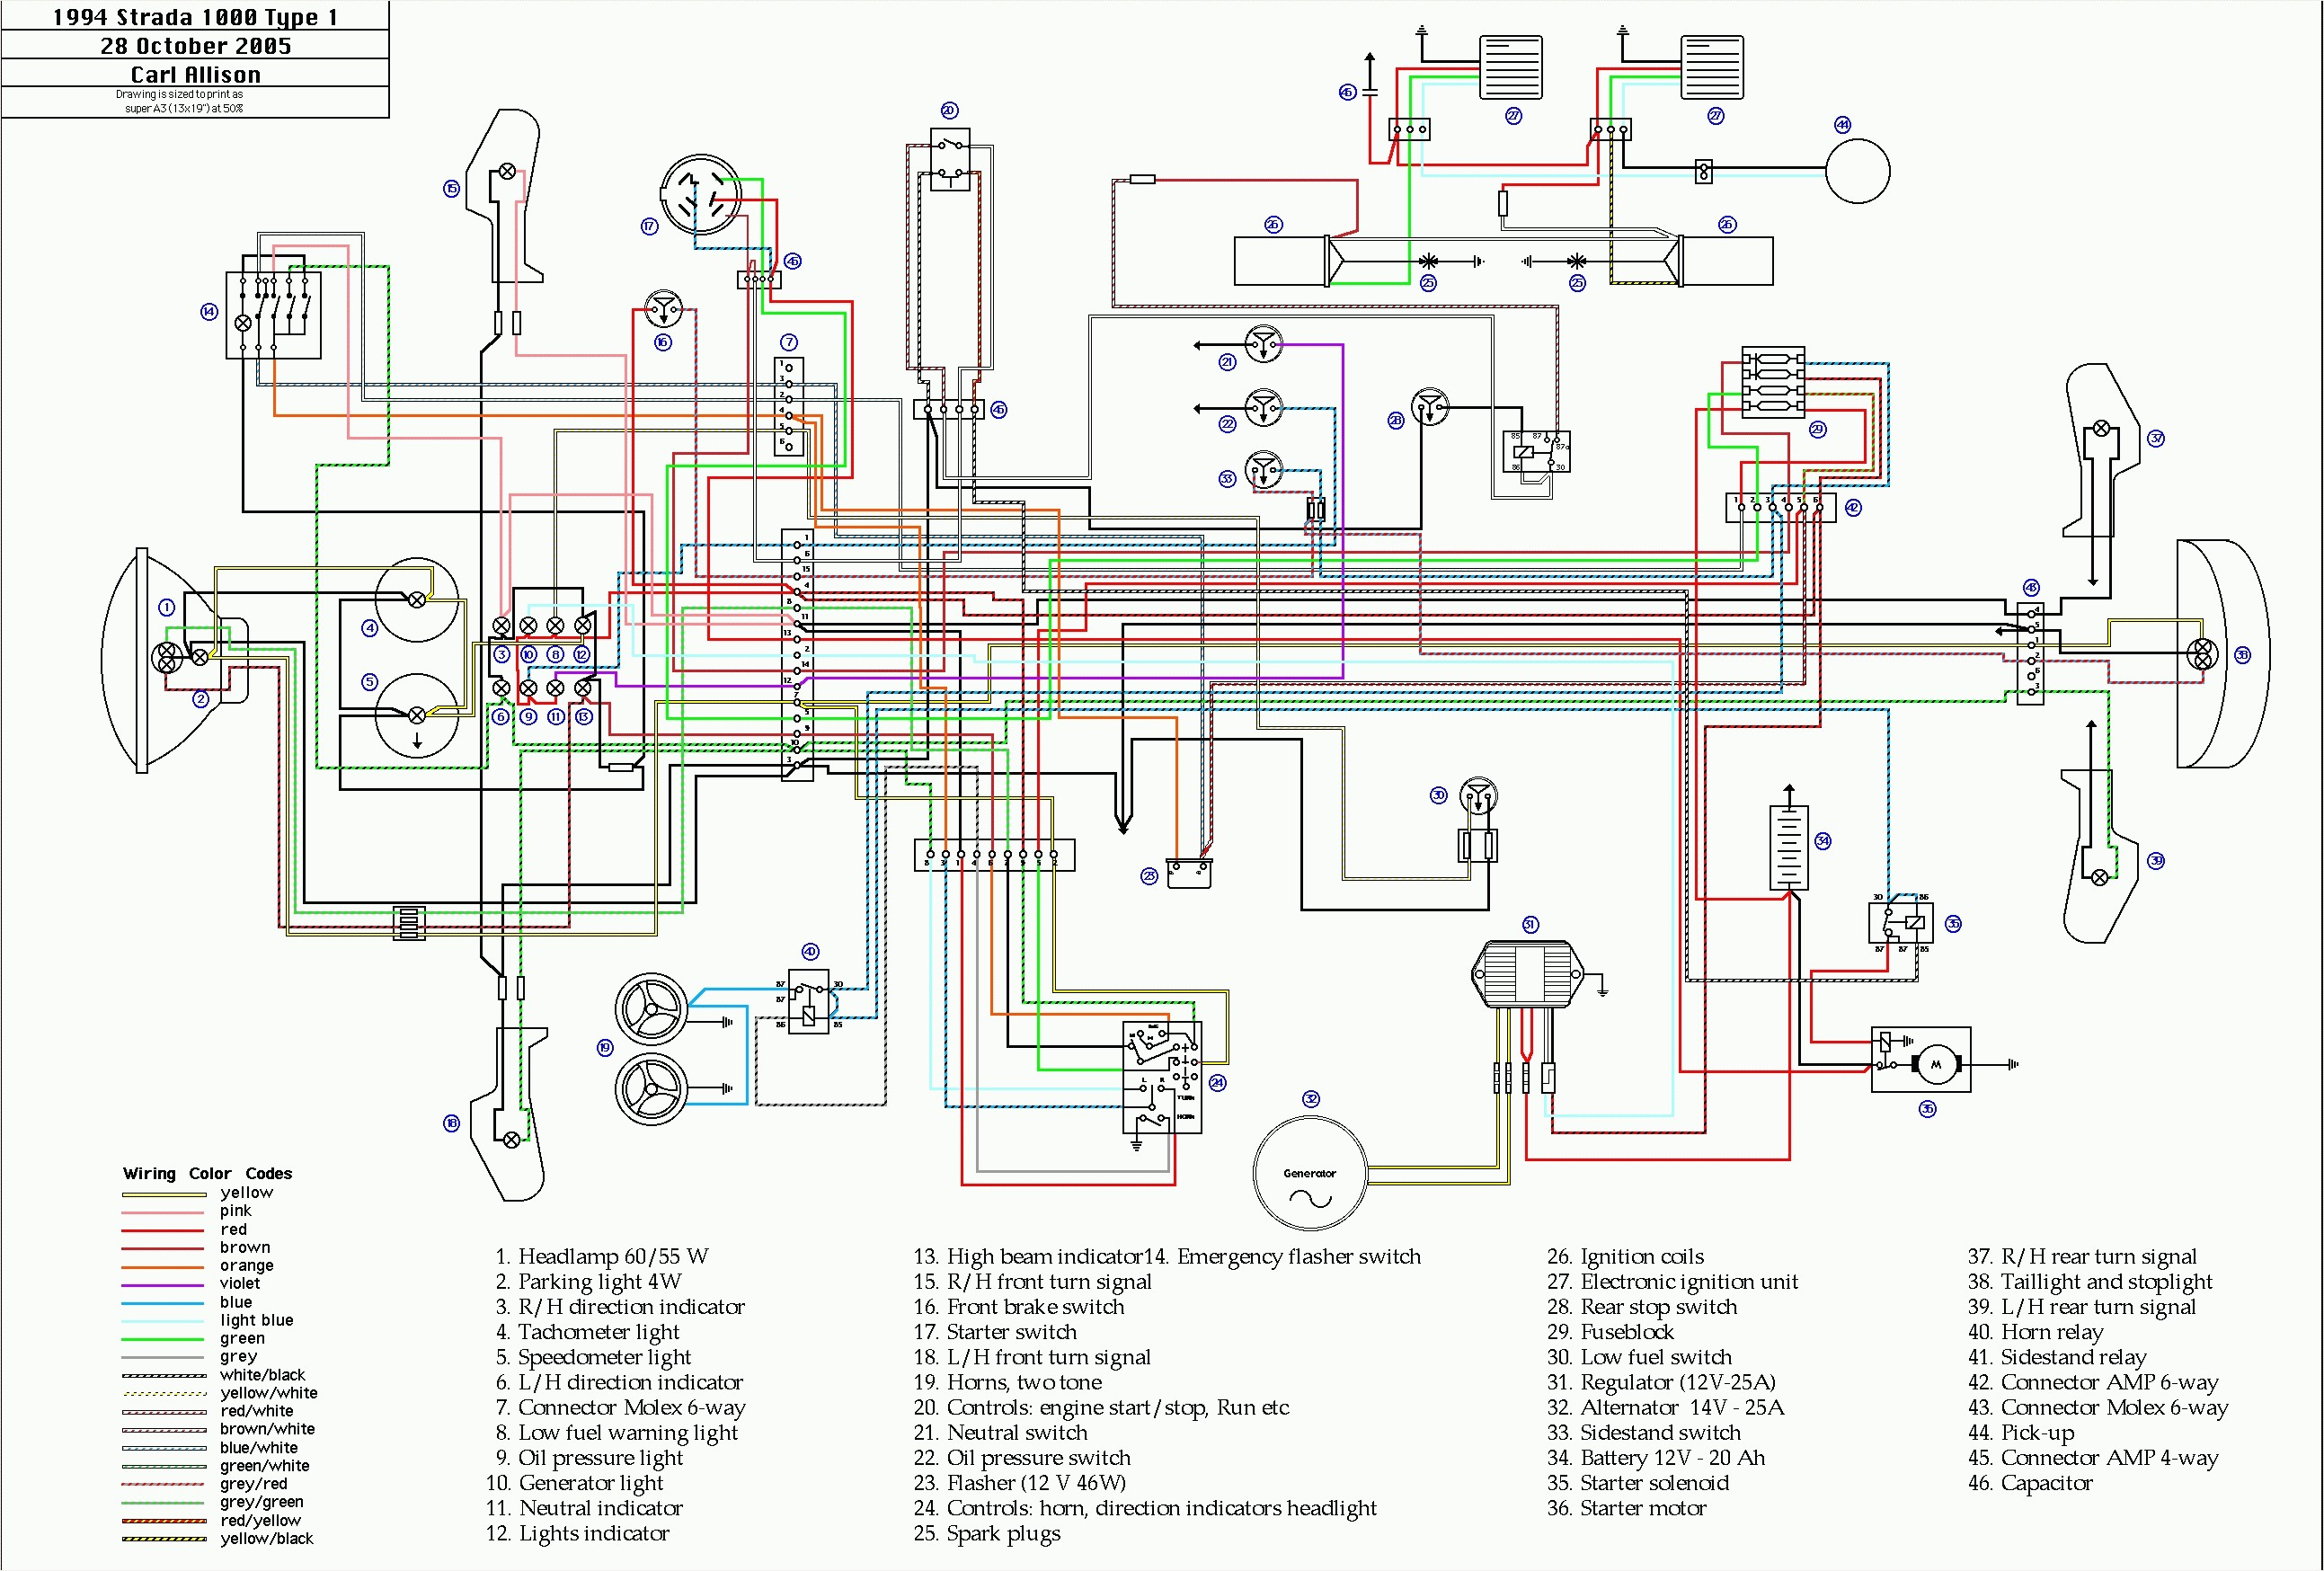 corsa engine diagram my wiring diagram rh detoxicrecenze com corsa engine parts diagram vauxhall corsa engine diagram